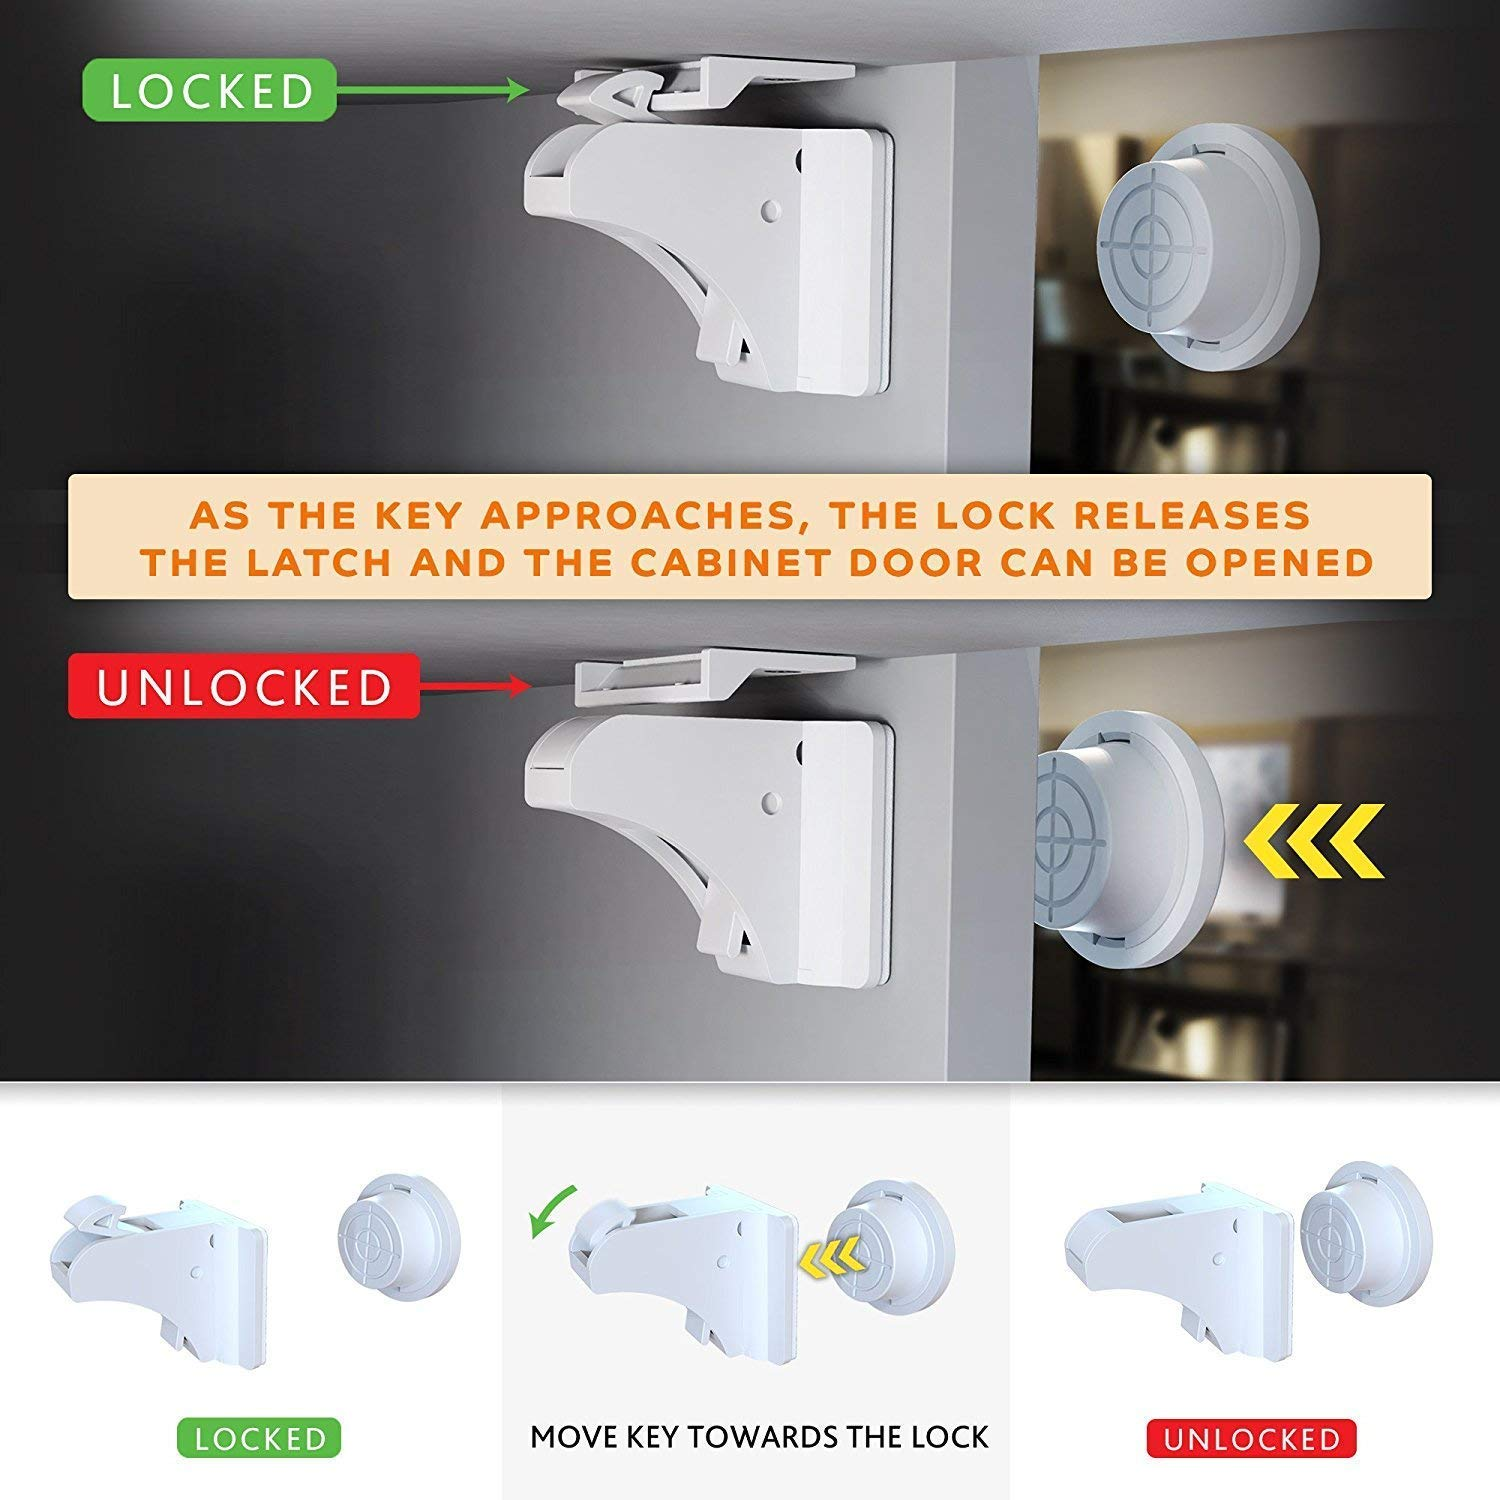 TOOLIC Magnetic Child Safety Locks Kits for Cabinet Drawer Cupboard Door Baby Proof Invisible No Drilling Design (3 Keys & 20 Locks) by TOOLIC (Image #4)